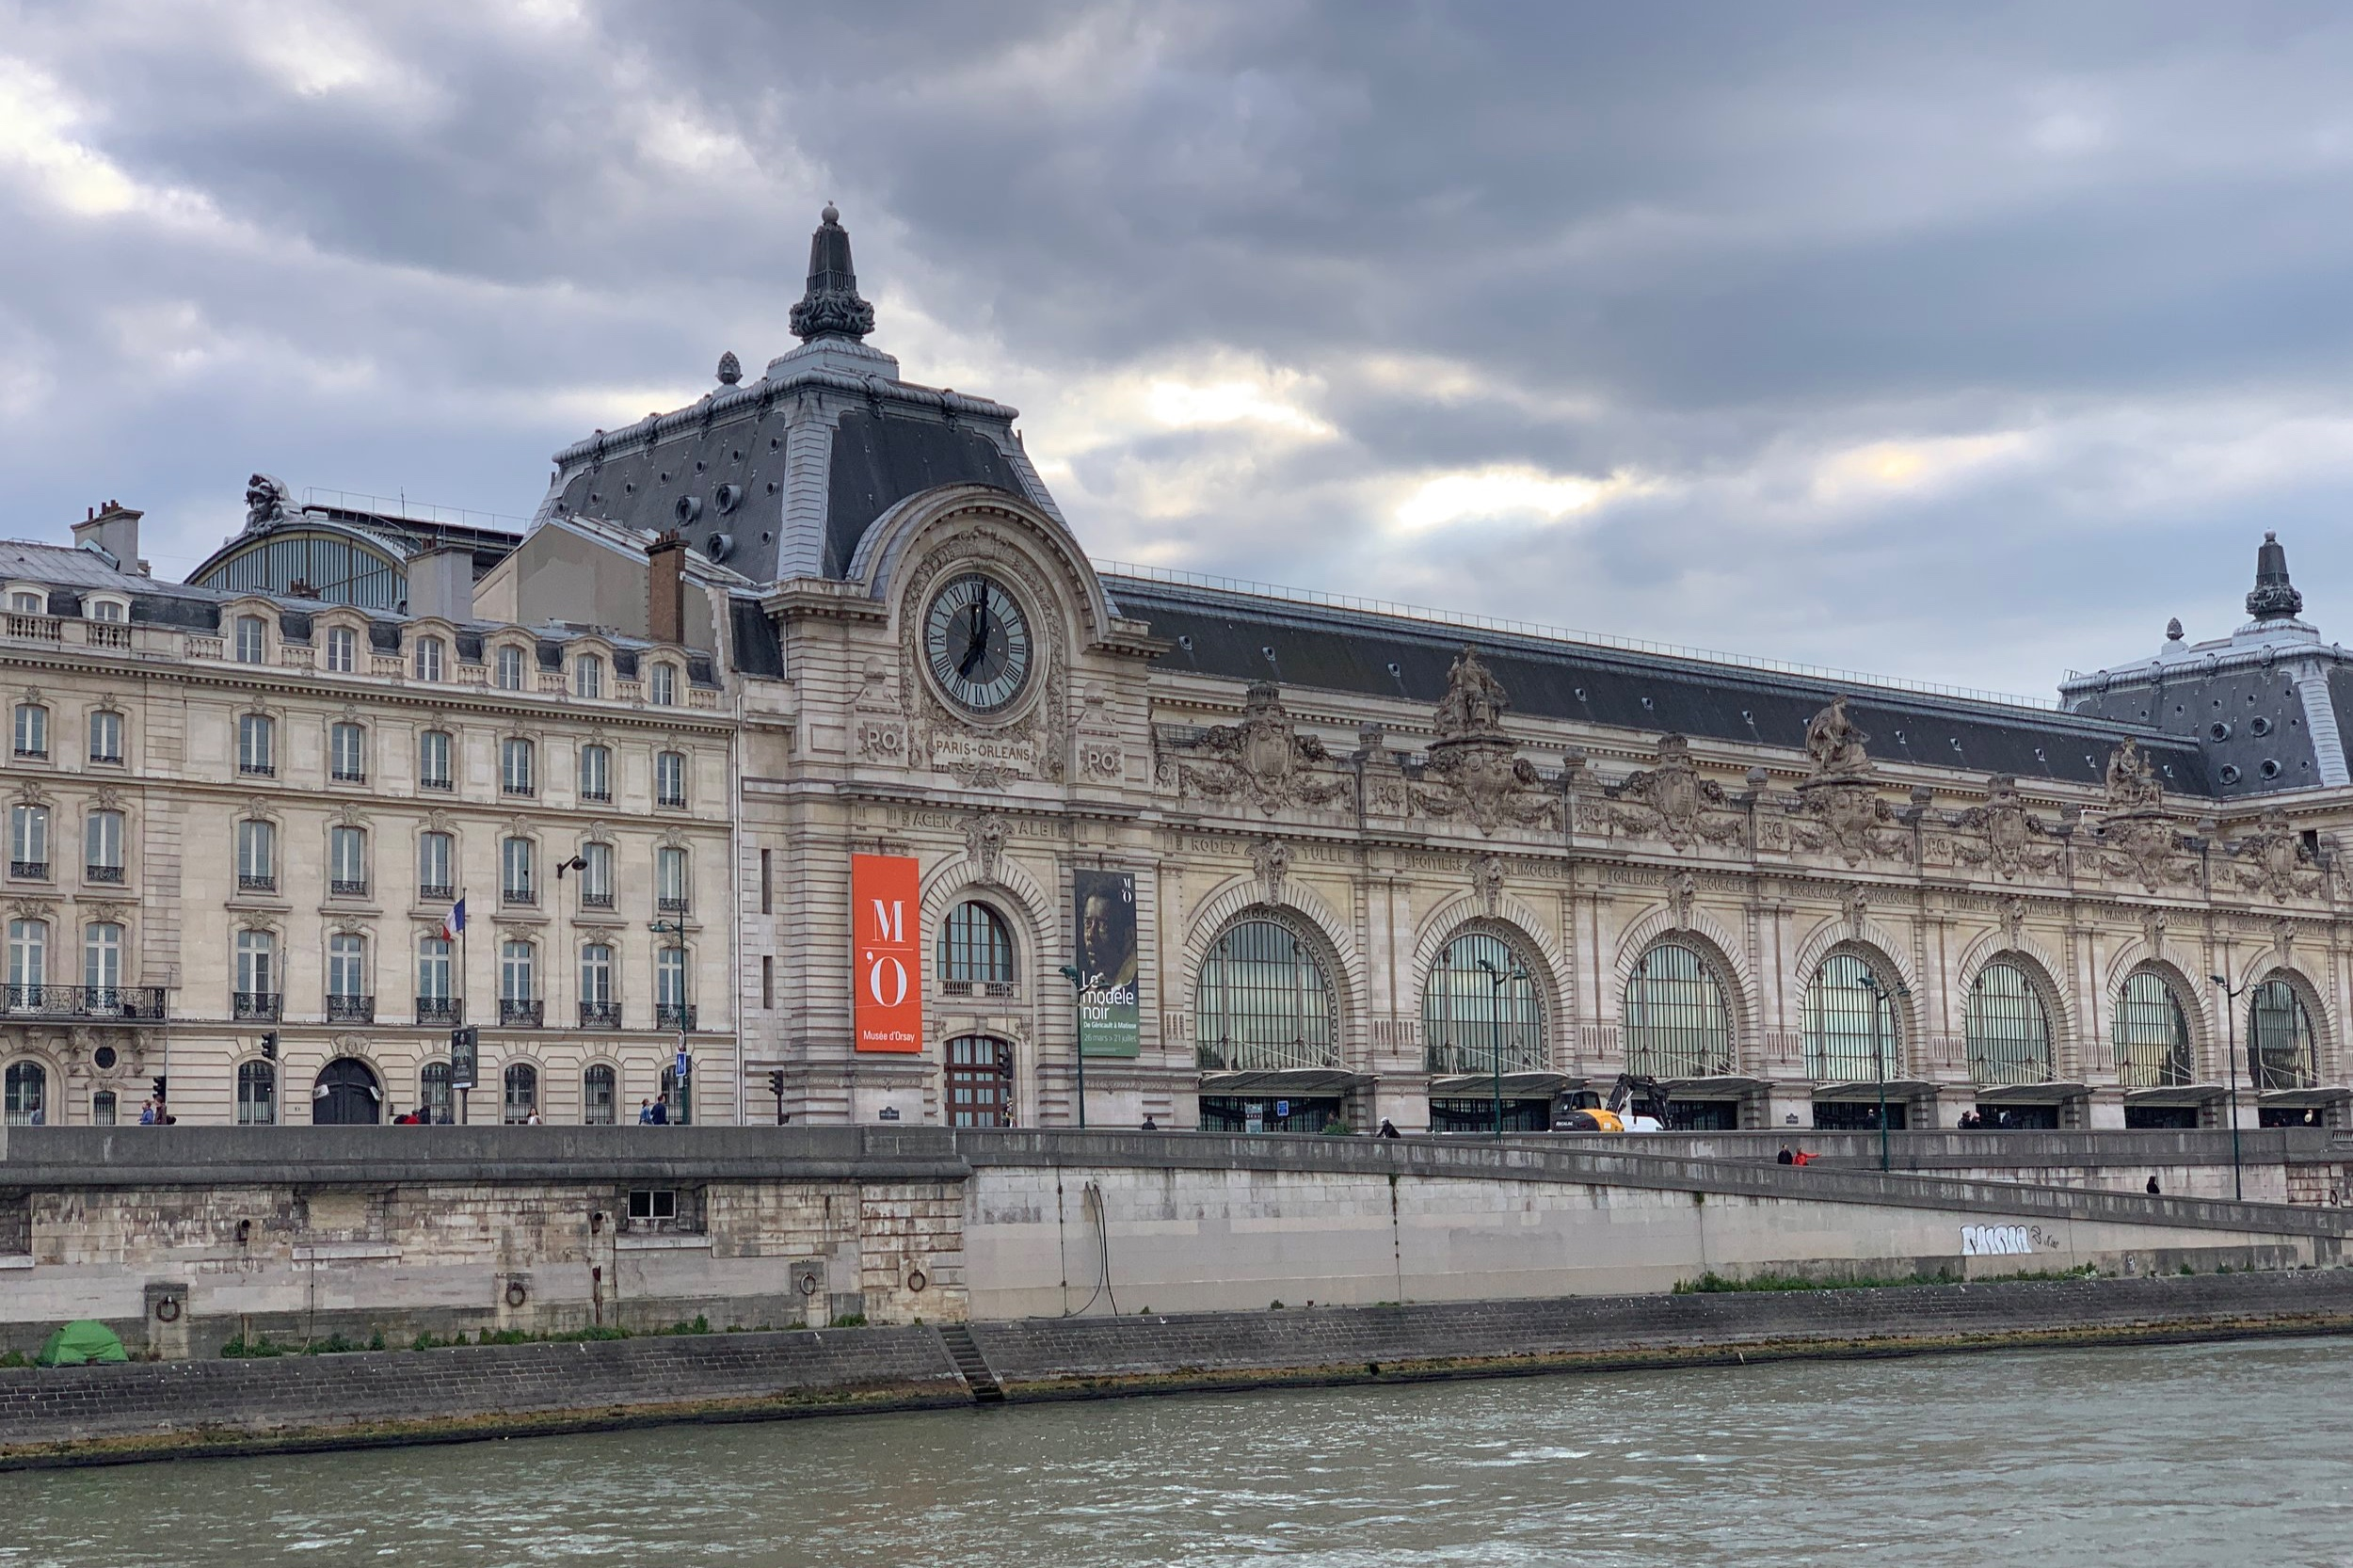 We got a good look at the Museum D'Orsay.